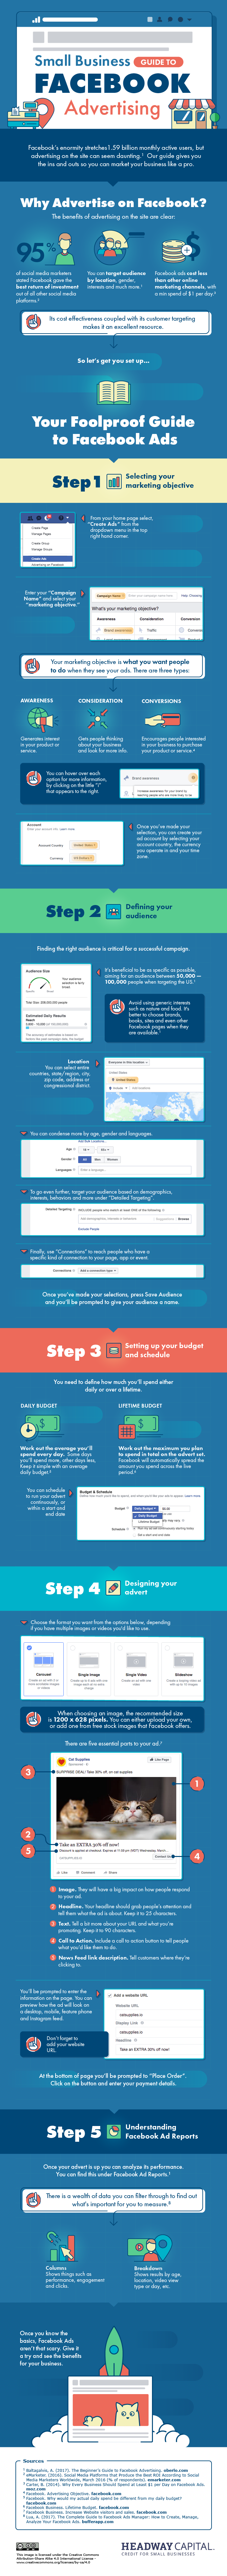 A Small Business Guide to Facebook Advertising [Infographic] | Social Media Today